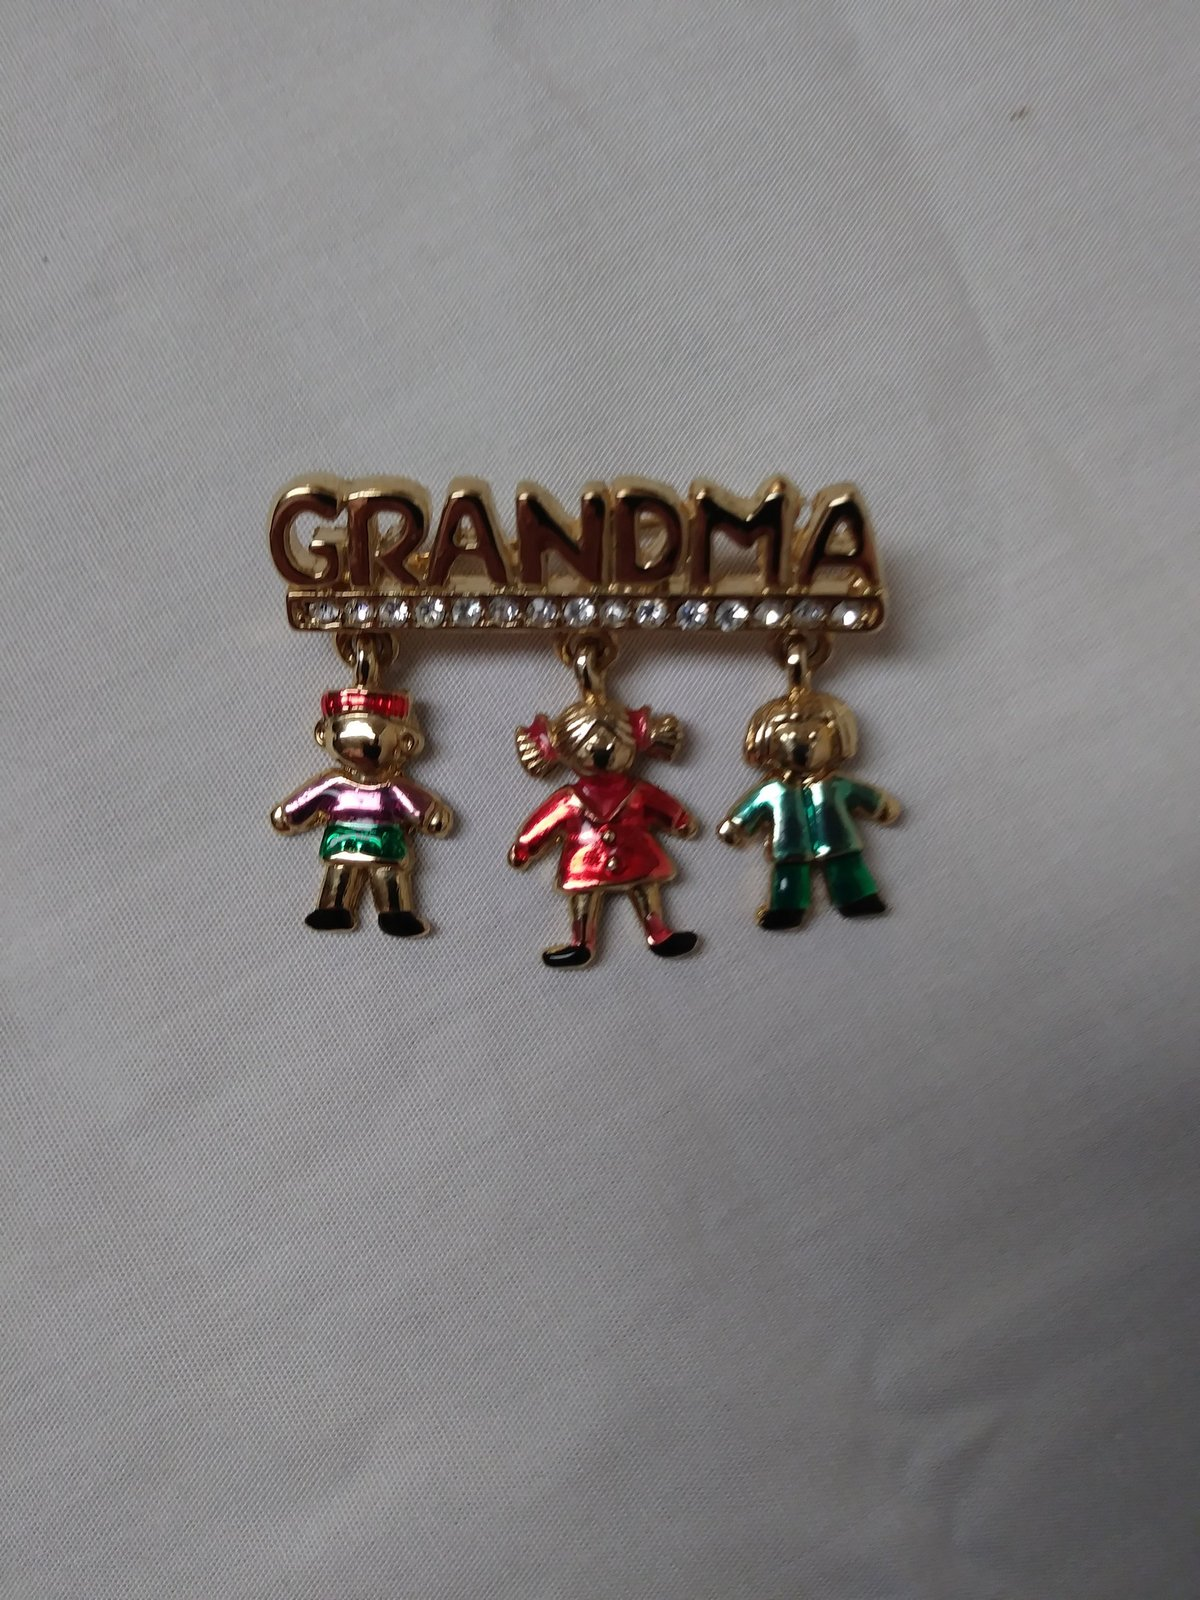 Grandma Bar Style Pin/Brooch